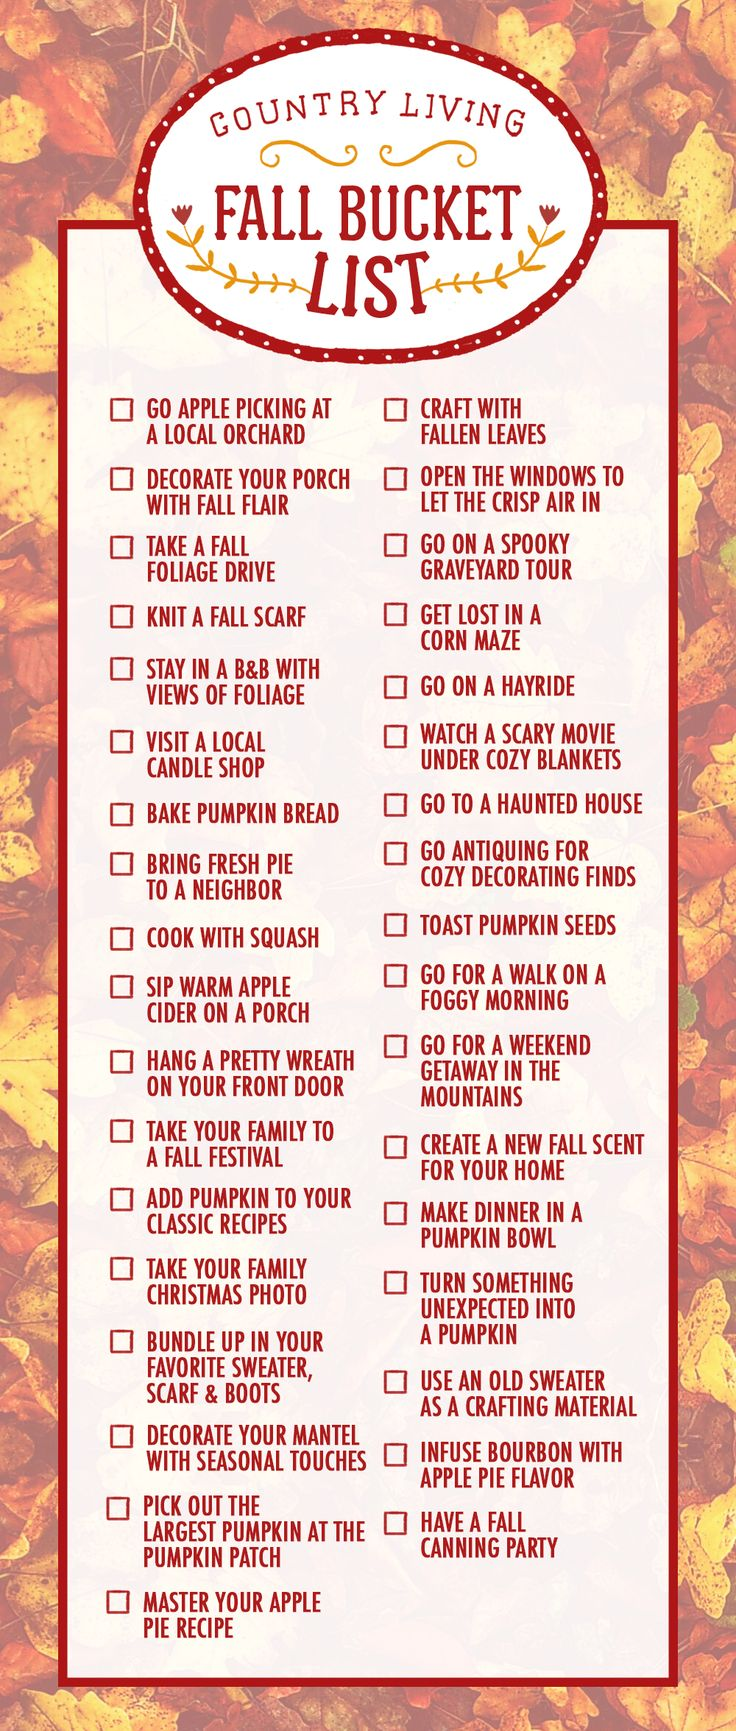 Consider this your ultimate fall bucket list! Use our checklist of essential autumn activities to ensure you have the best season yet. We've rounded up our favorite seasonal activities from baking apple pie to decorating your porch and mantel for fall.